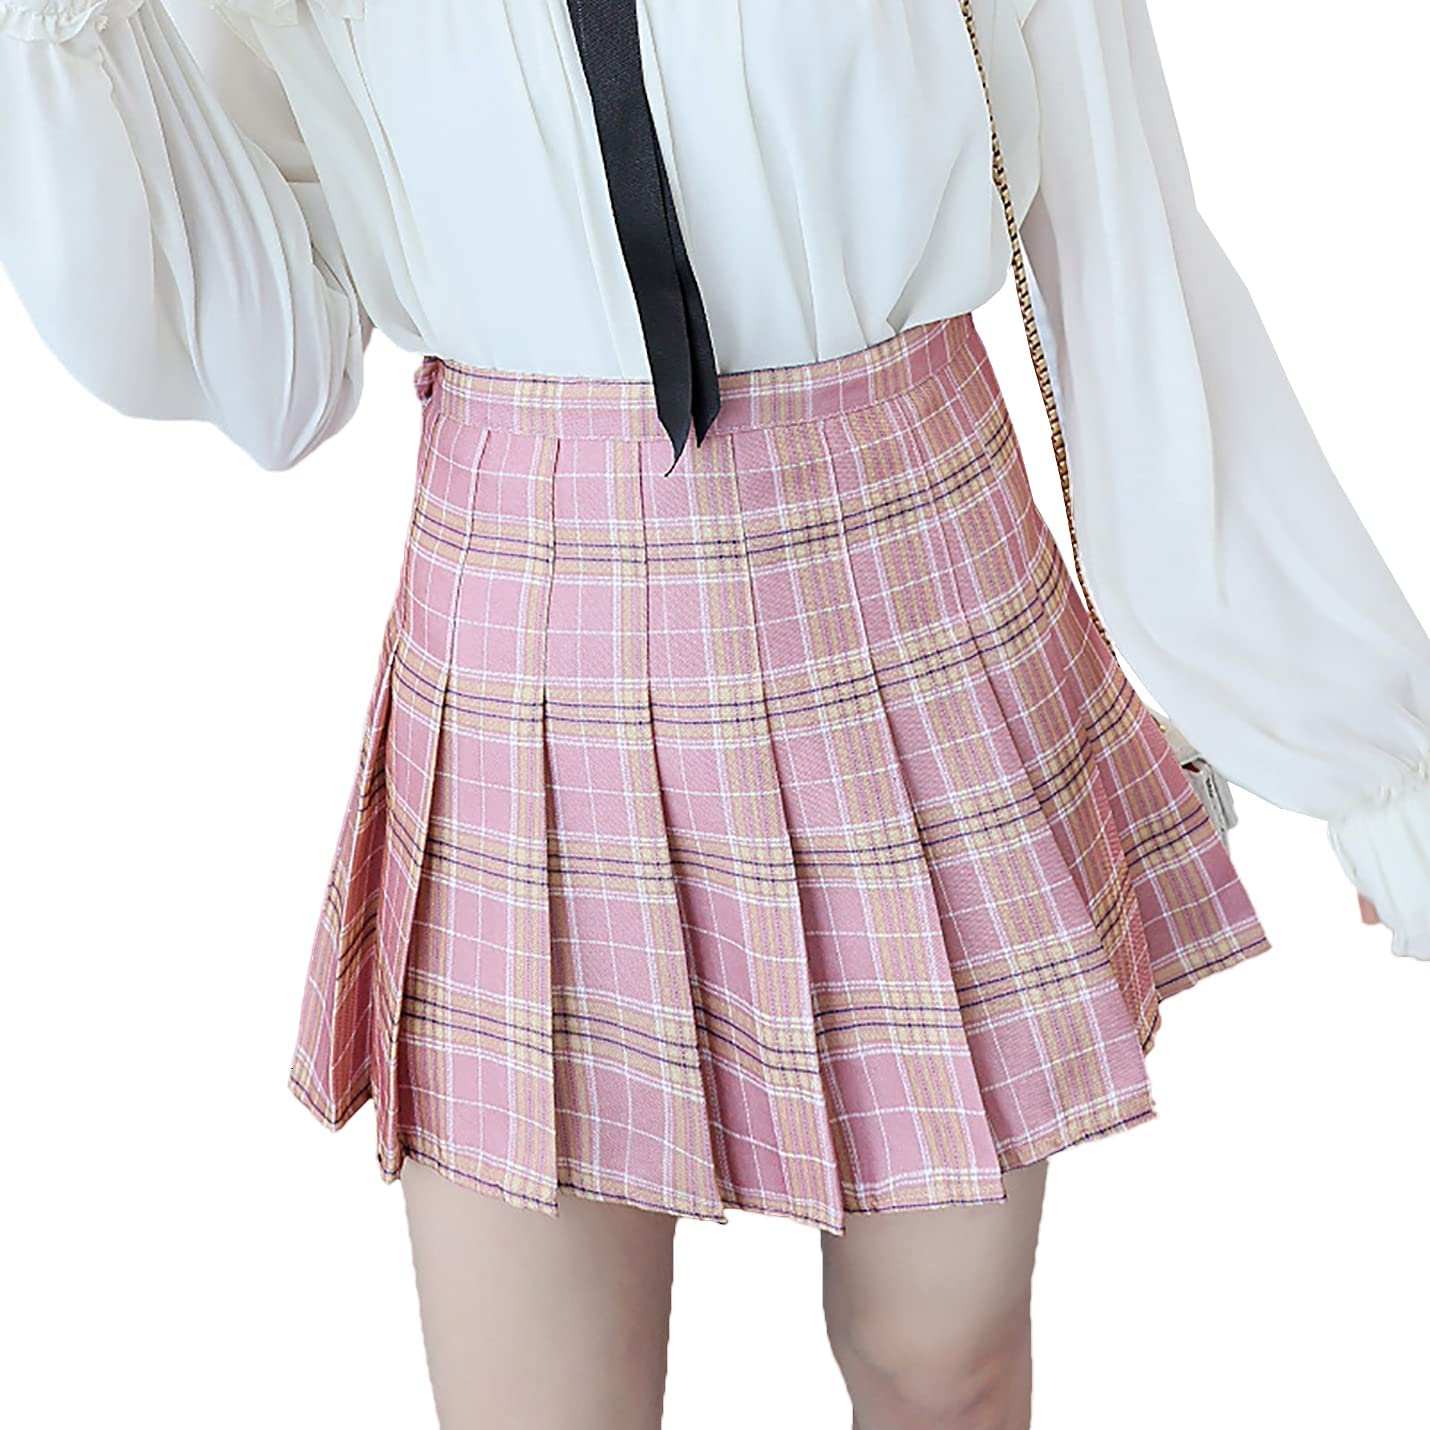 IKIIO Women's Summer Casual Plaid Pleated Relaxed Fit Skirt Flared Swing A Line Skirts